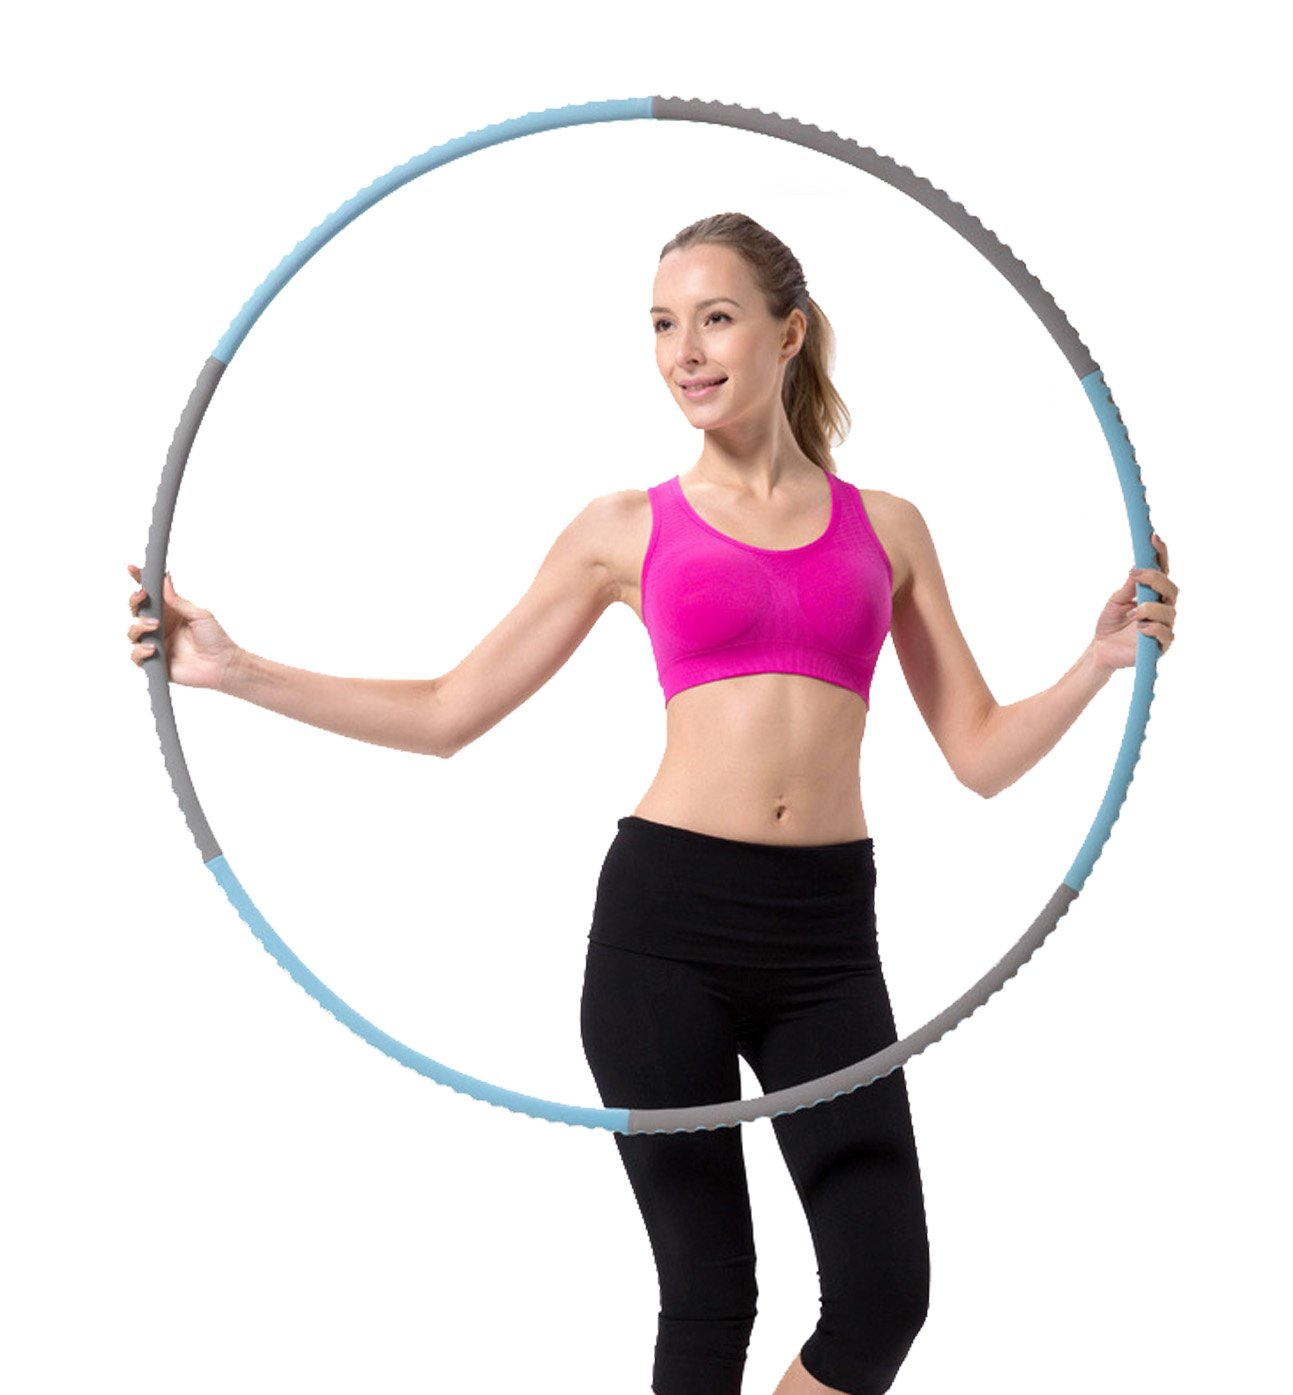 Fun&Life - Professional Weighted Hula Hoop 2 lbs (Dia.41'') for Fitness, Workout for Adults and Kids, Exercise, Weight Loss, Metal Construction, High Density Eco-friendly Foam Padded